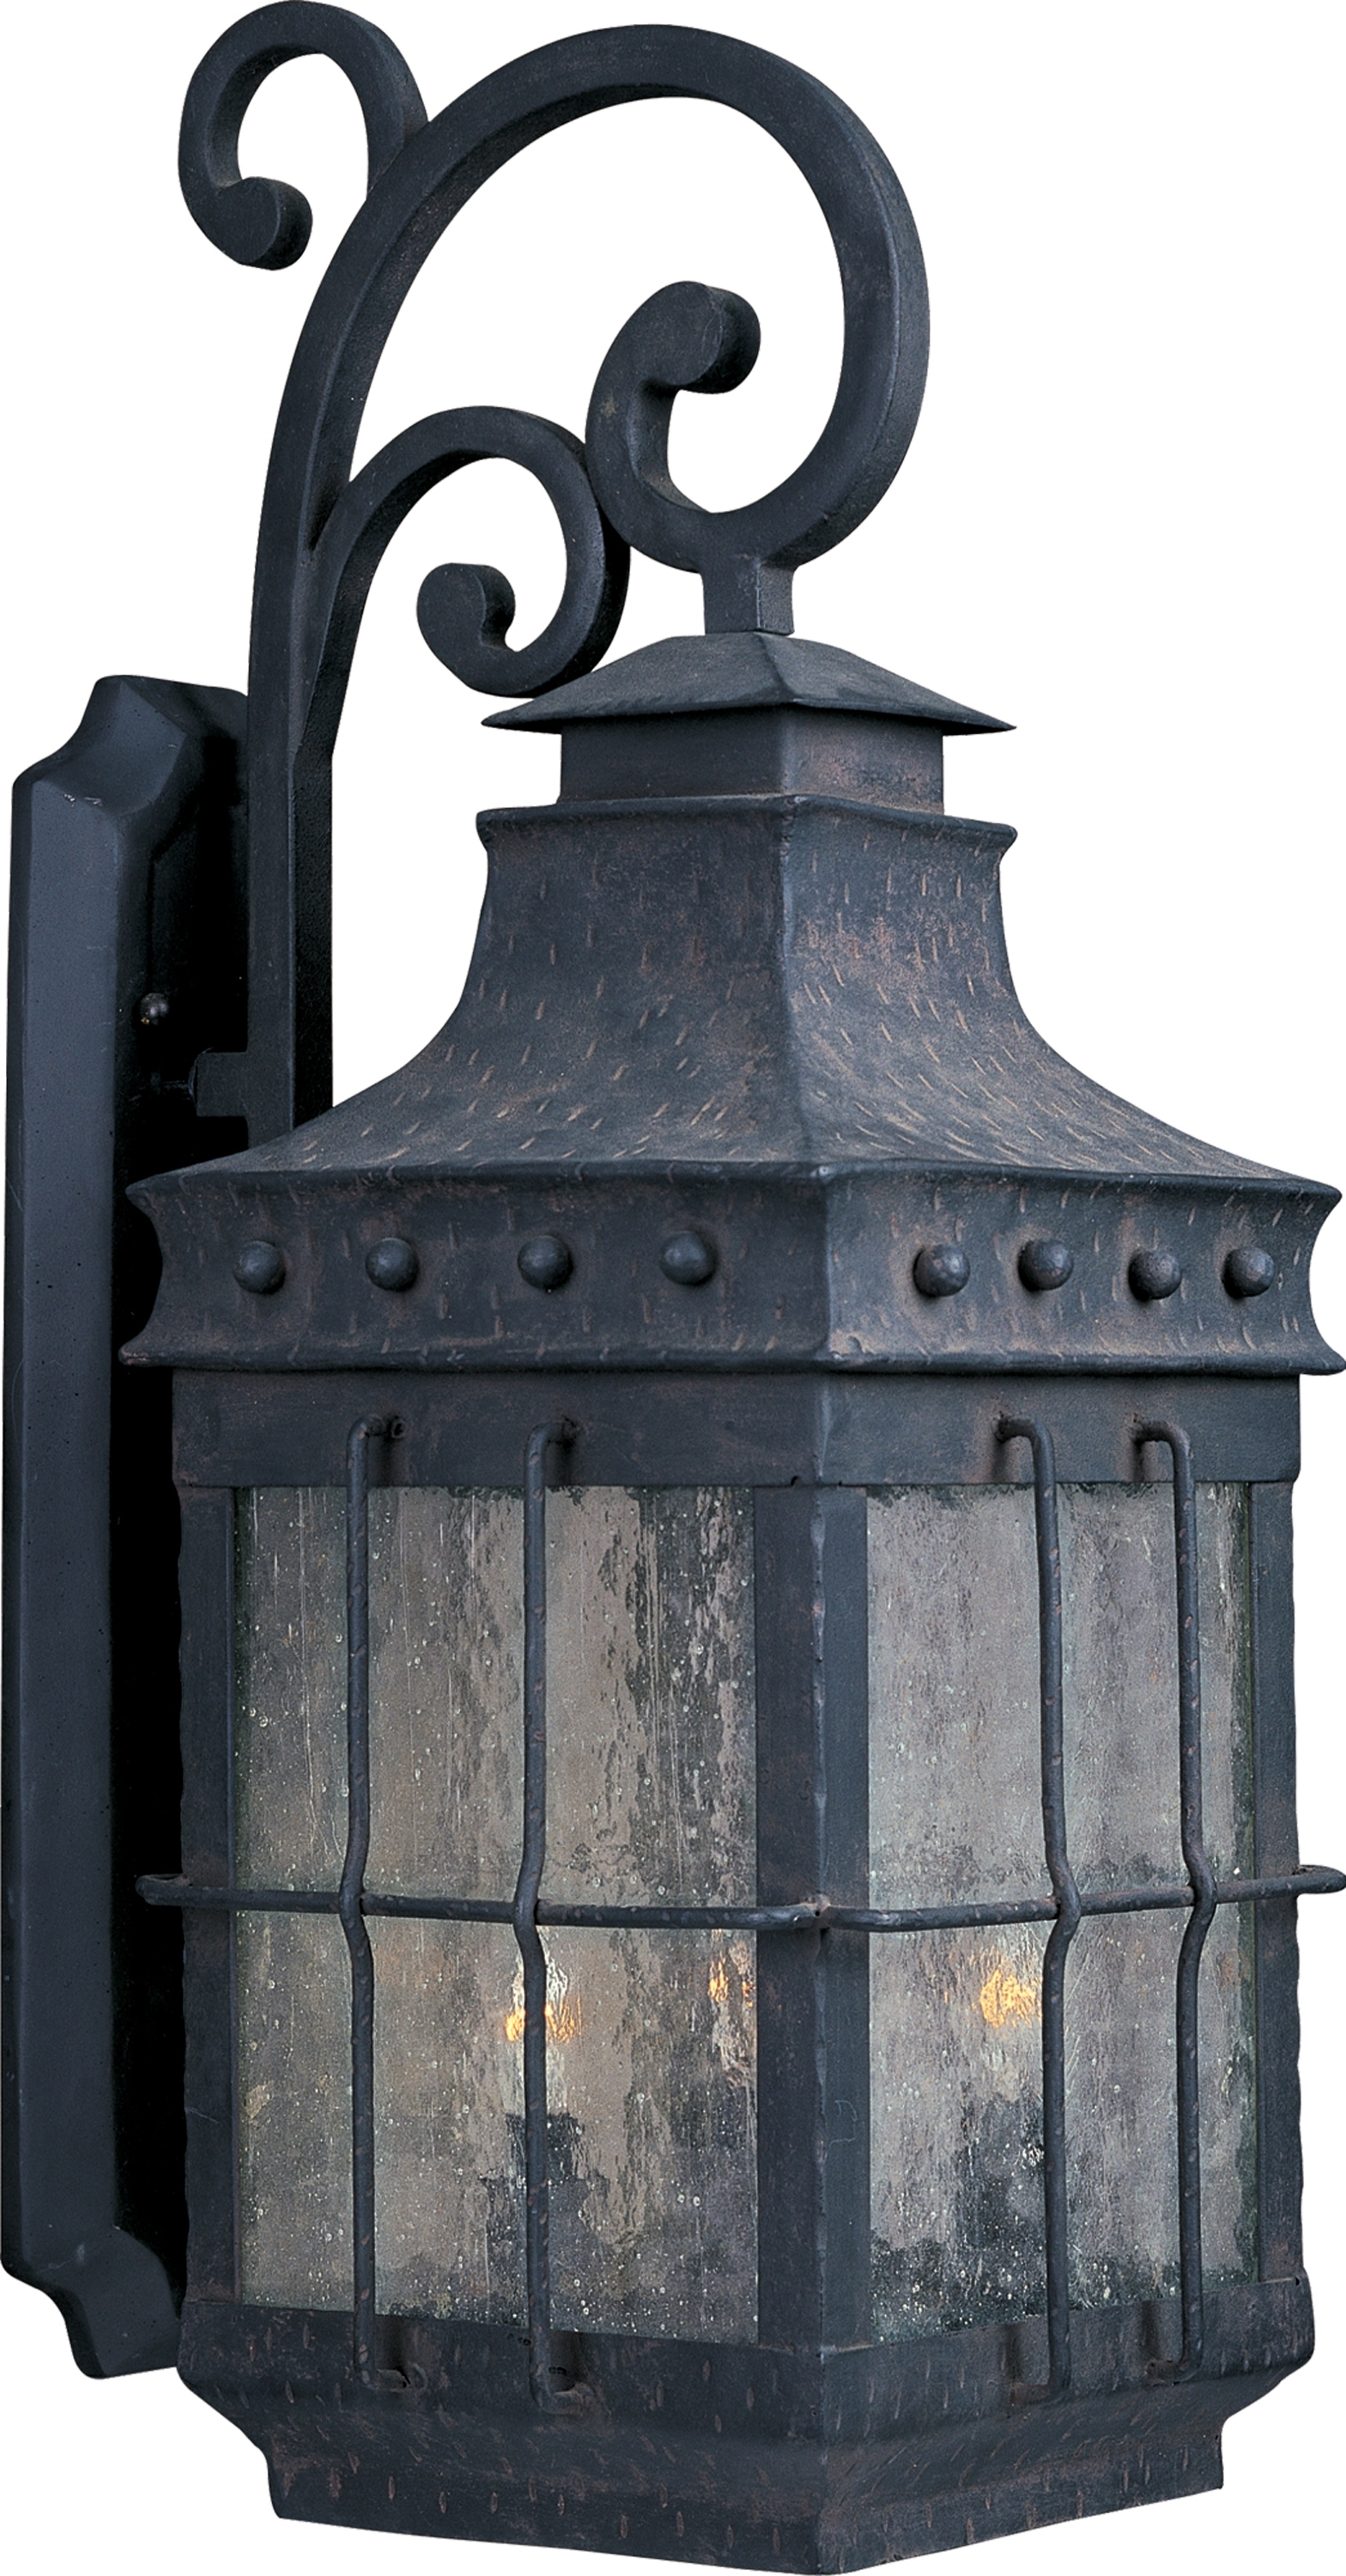 Most Recent Nantucket 4 Light Outdoor Wall Lantern Intended For Nantucket Outdoor Lanterns (View 7 of 20)